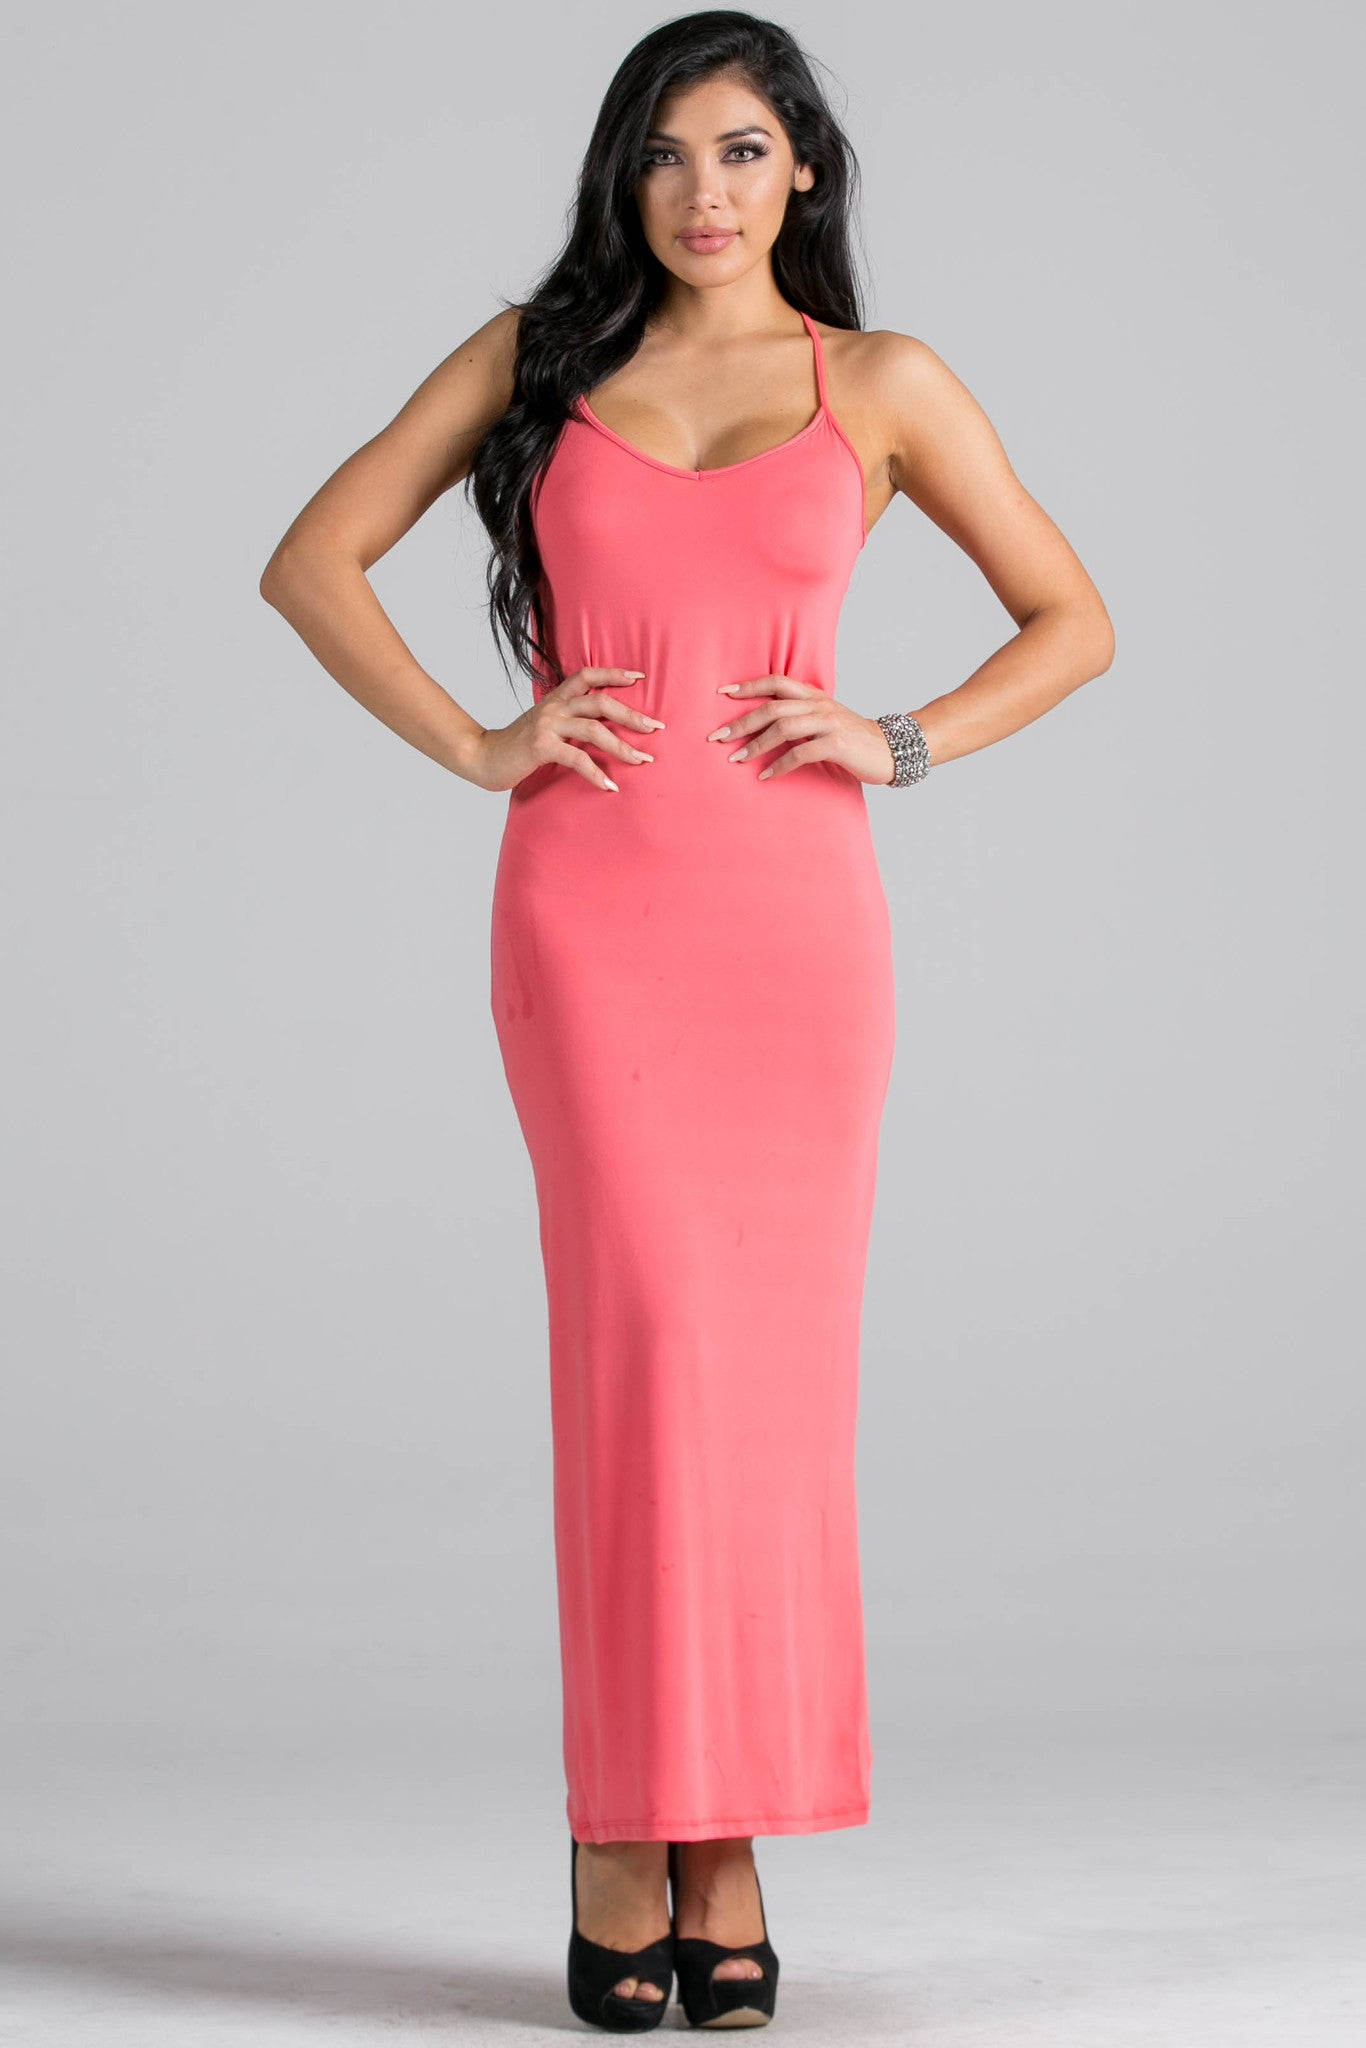 Micro Suede Coral Maxi Dress - Dresses - My Yuccie - 1